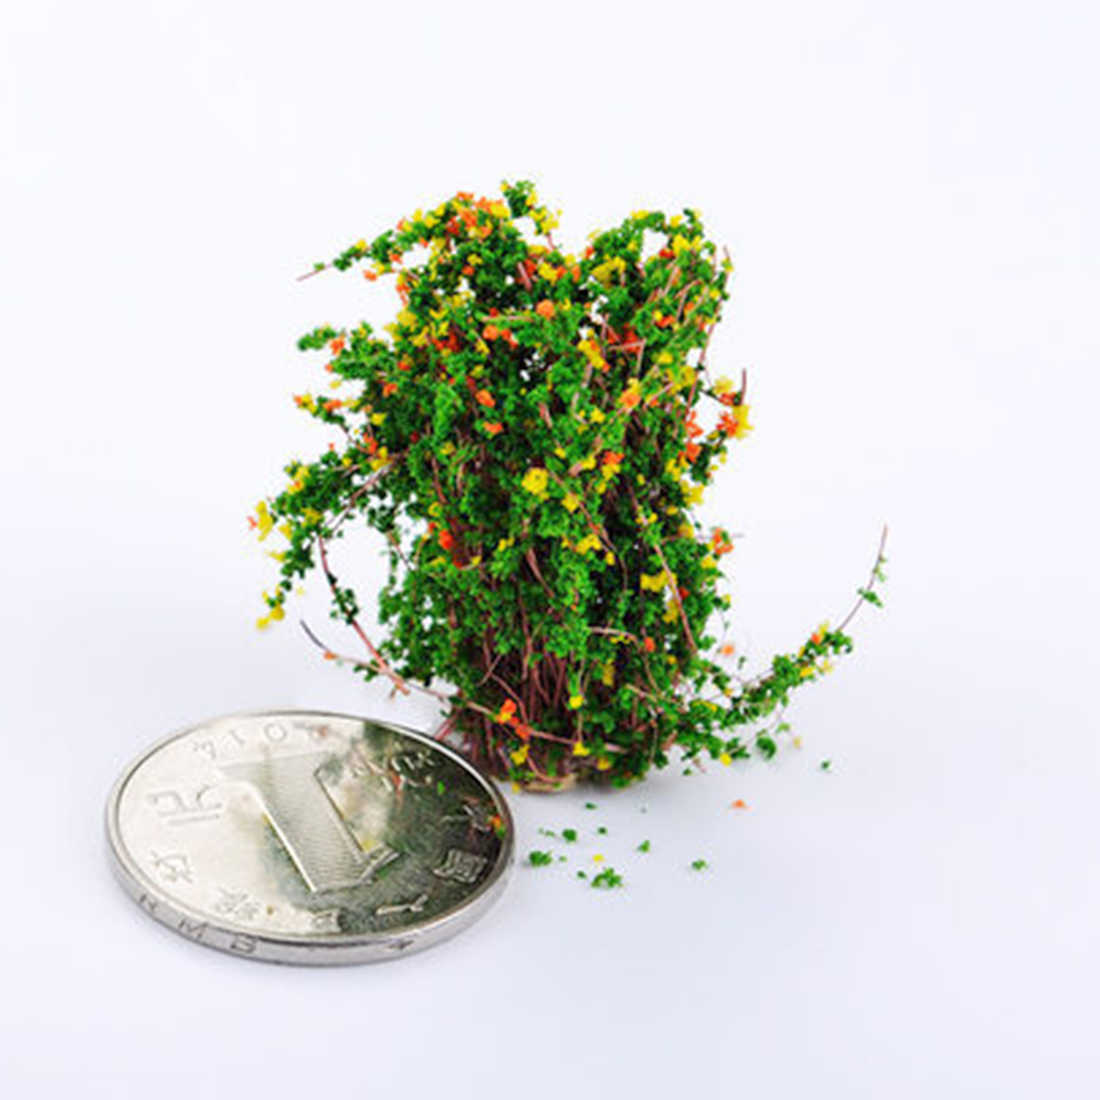 1Pc DIY Handmade Model Material Sand Table Decorative Shrub Flower Plant Flower Garland Decor - No.4 Yellow